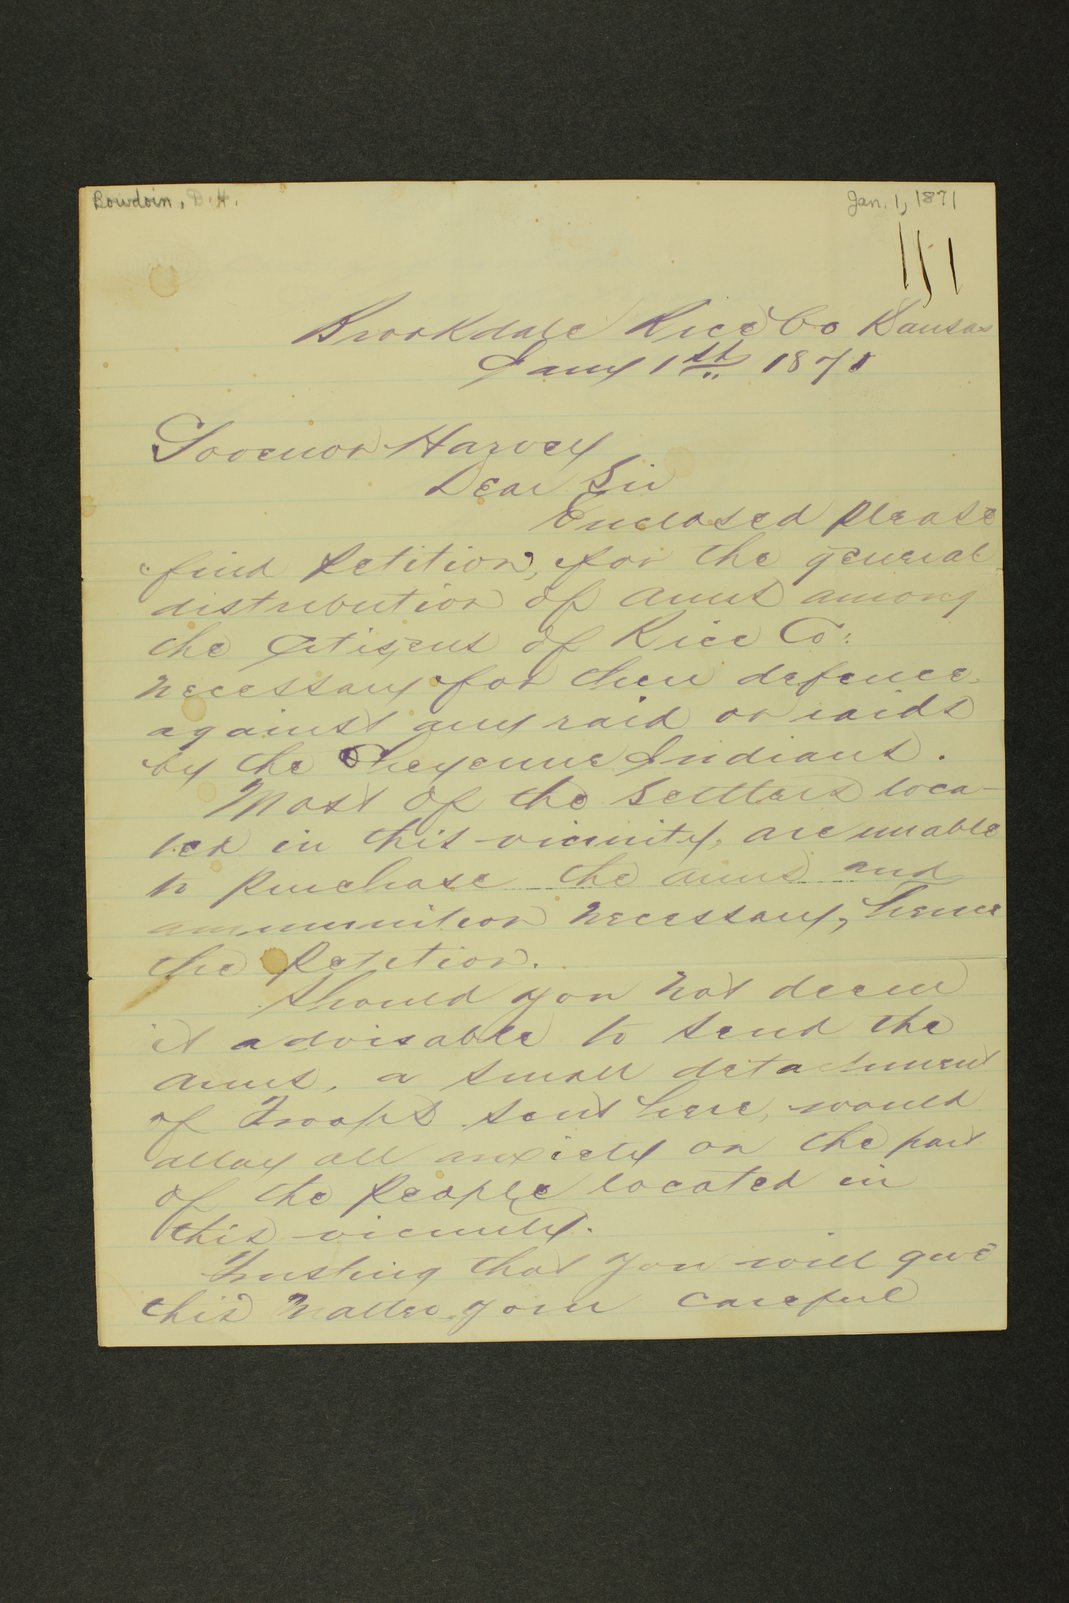 Kansas Adjutant General general correspondence, 1871 - 1 [January - April 1871]